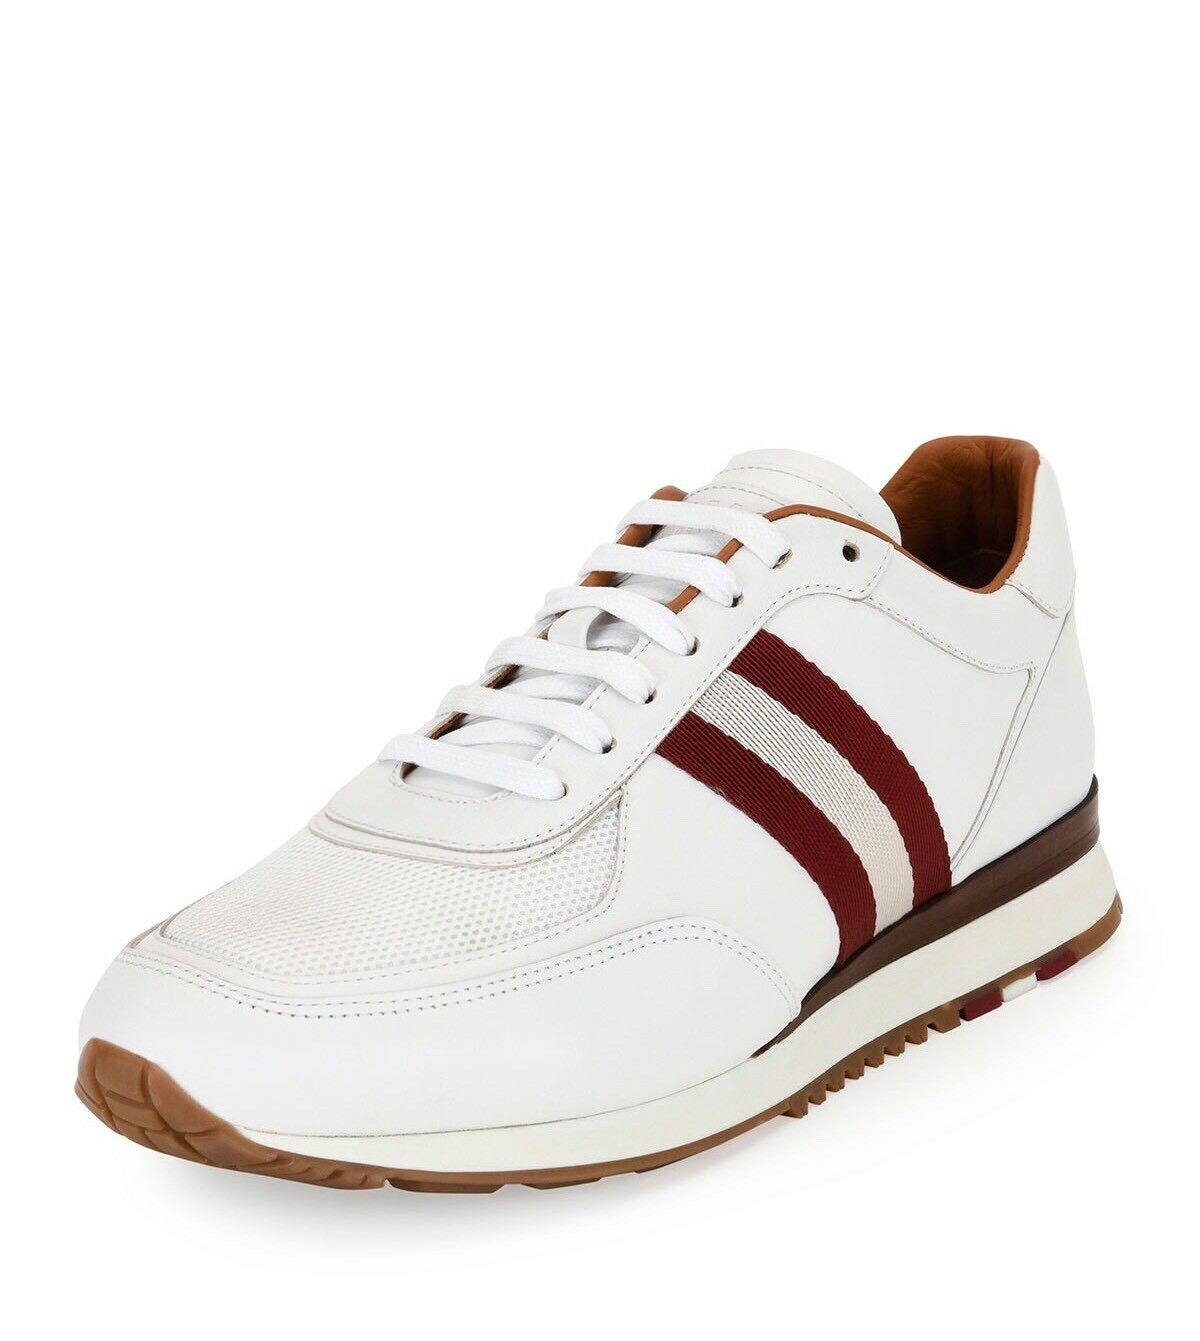 New In Box Bally Aston White Leather Striped Low-Top Trainer Sneakers 7EU/8US